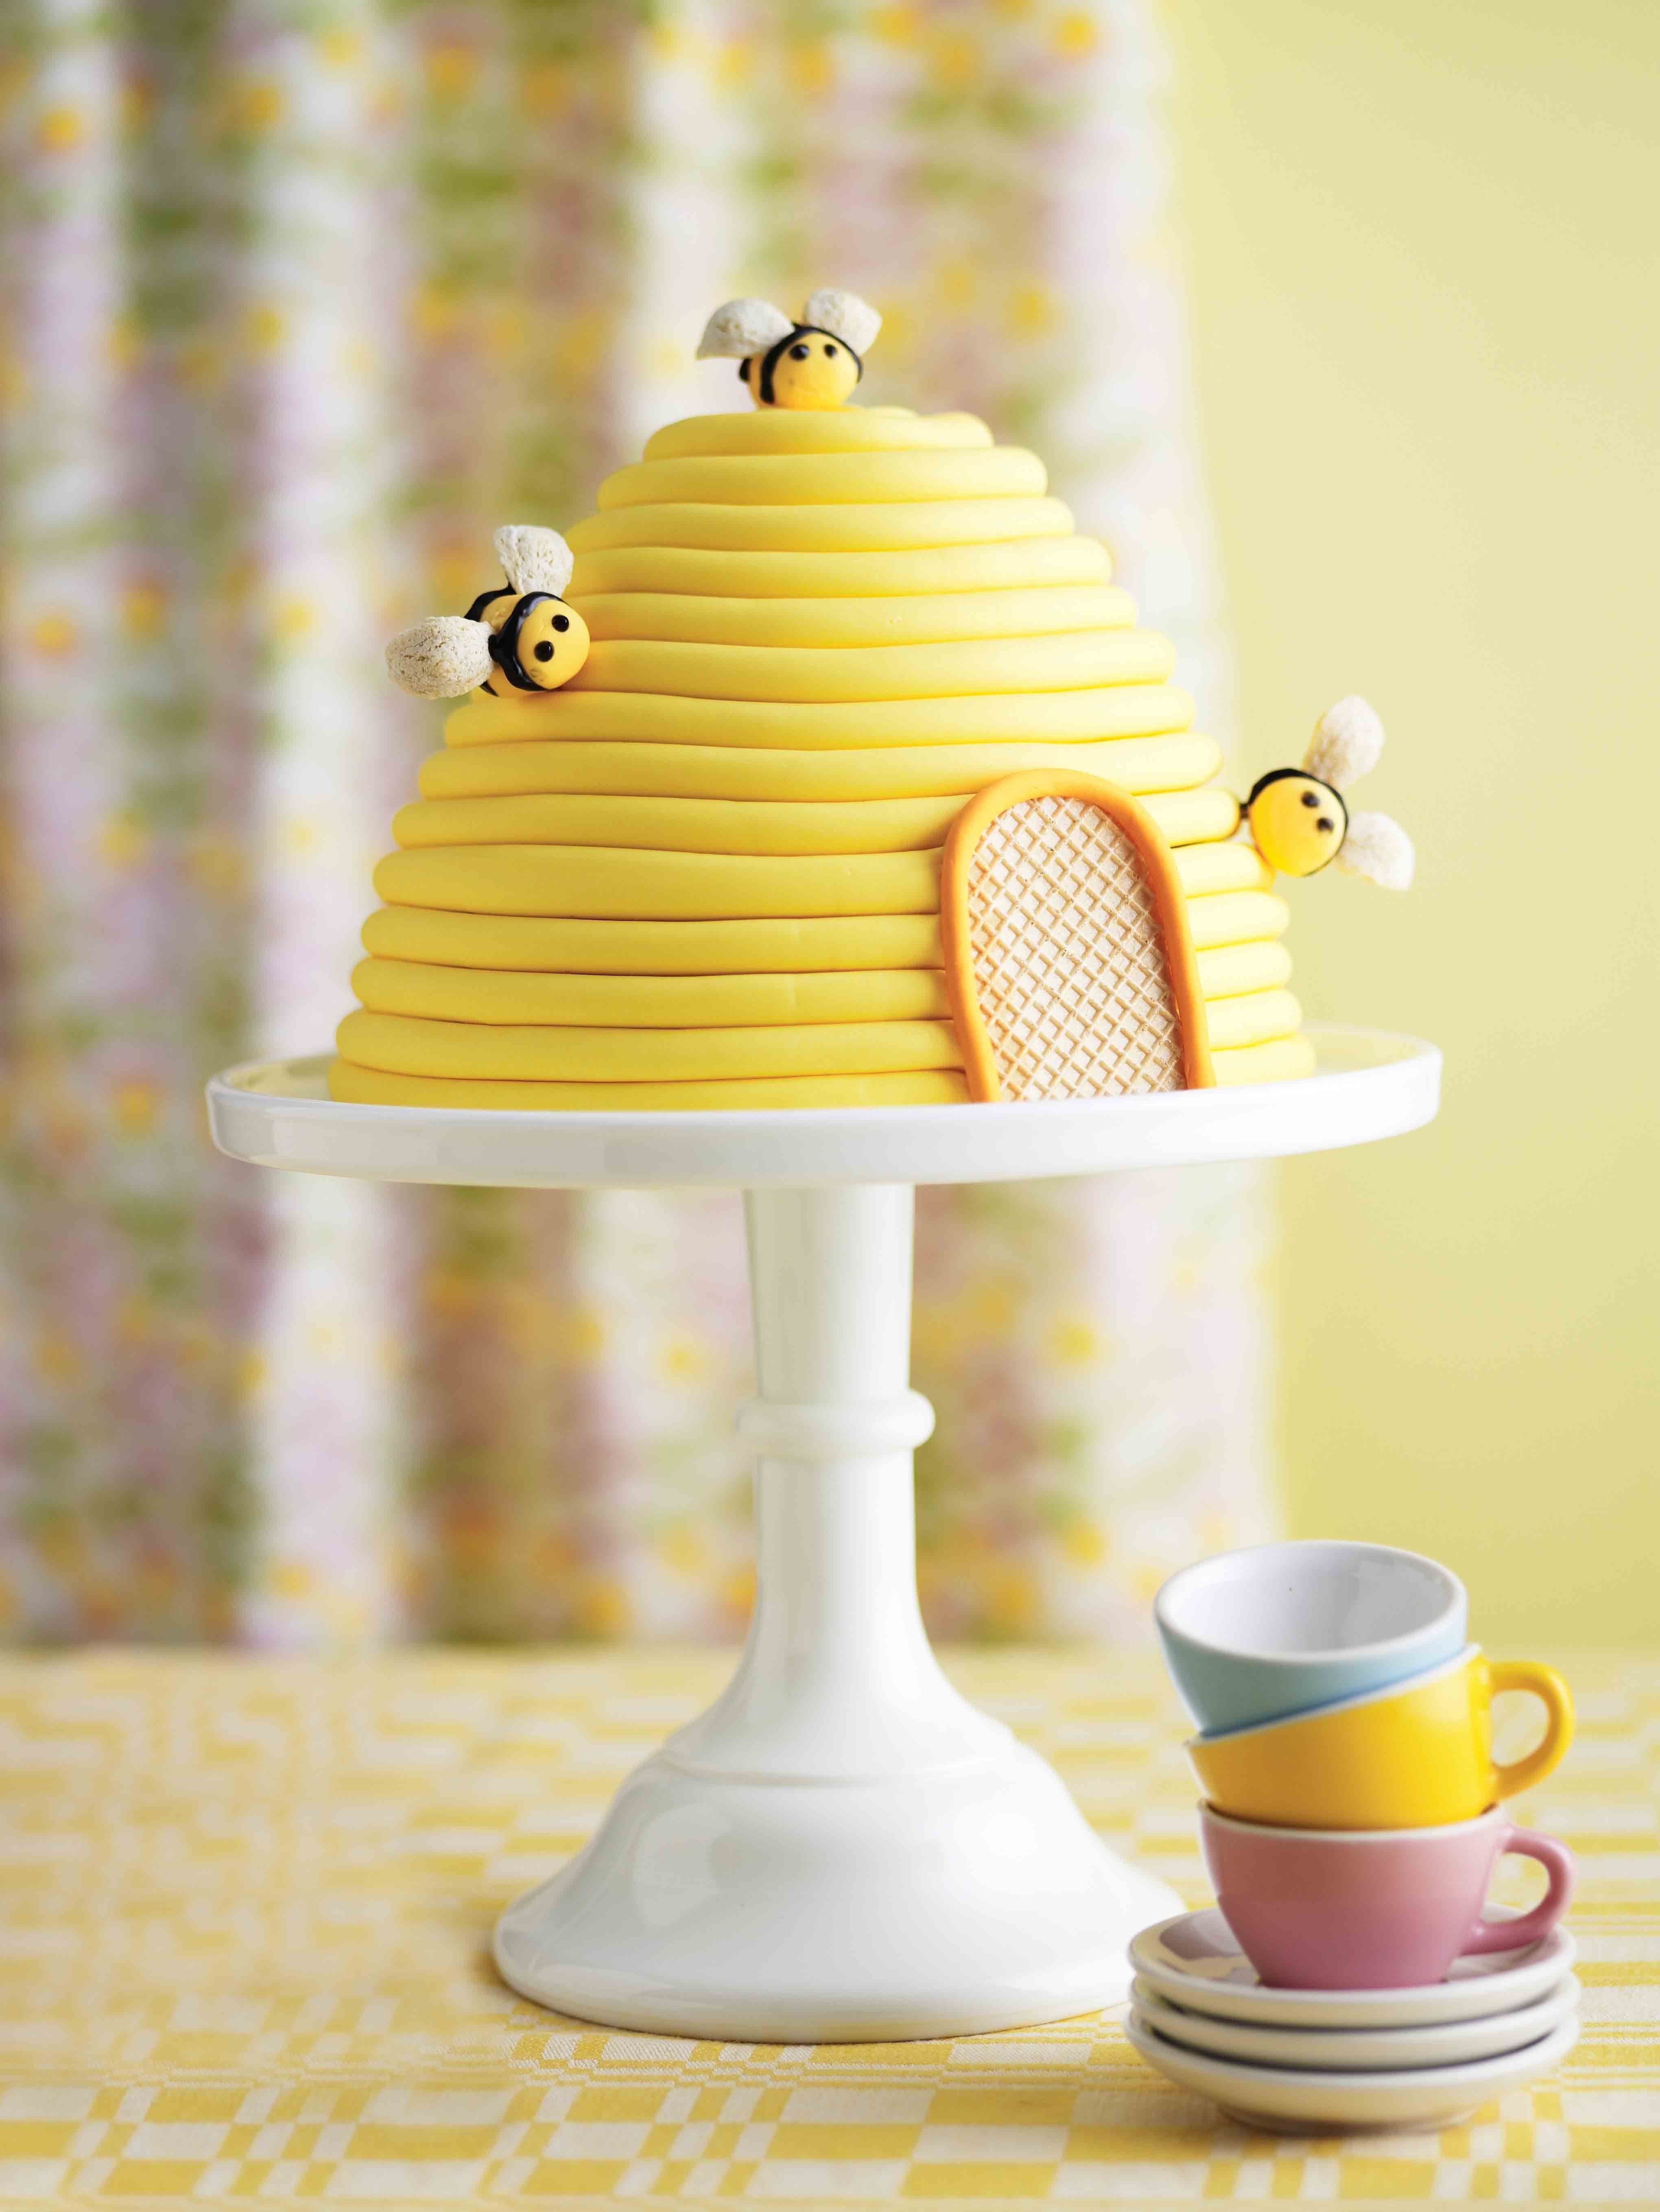 Buzzy Beehive   From More Cakes for Kids - available where all good books are sold and online at: http://www.magshop.com.au/browse/aww-trade-cookbooks  Photographer: Dean Wilmot